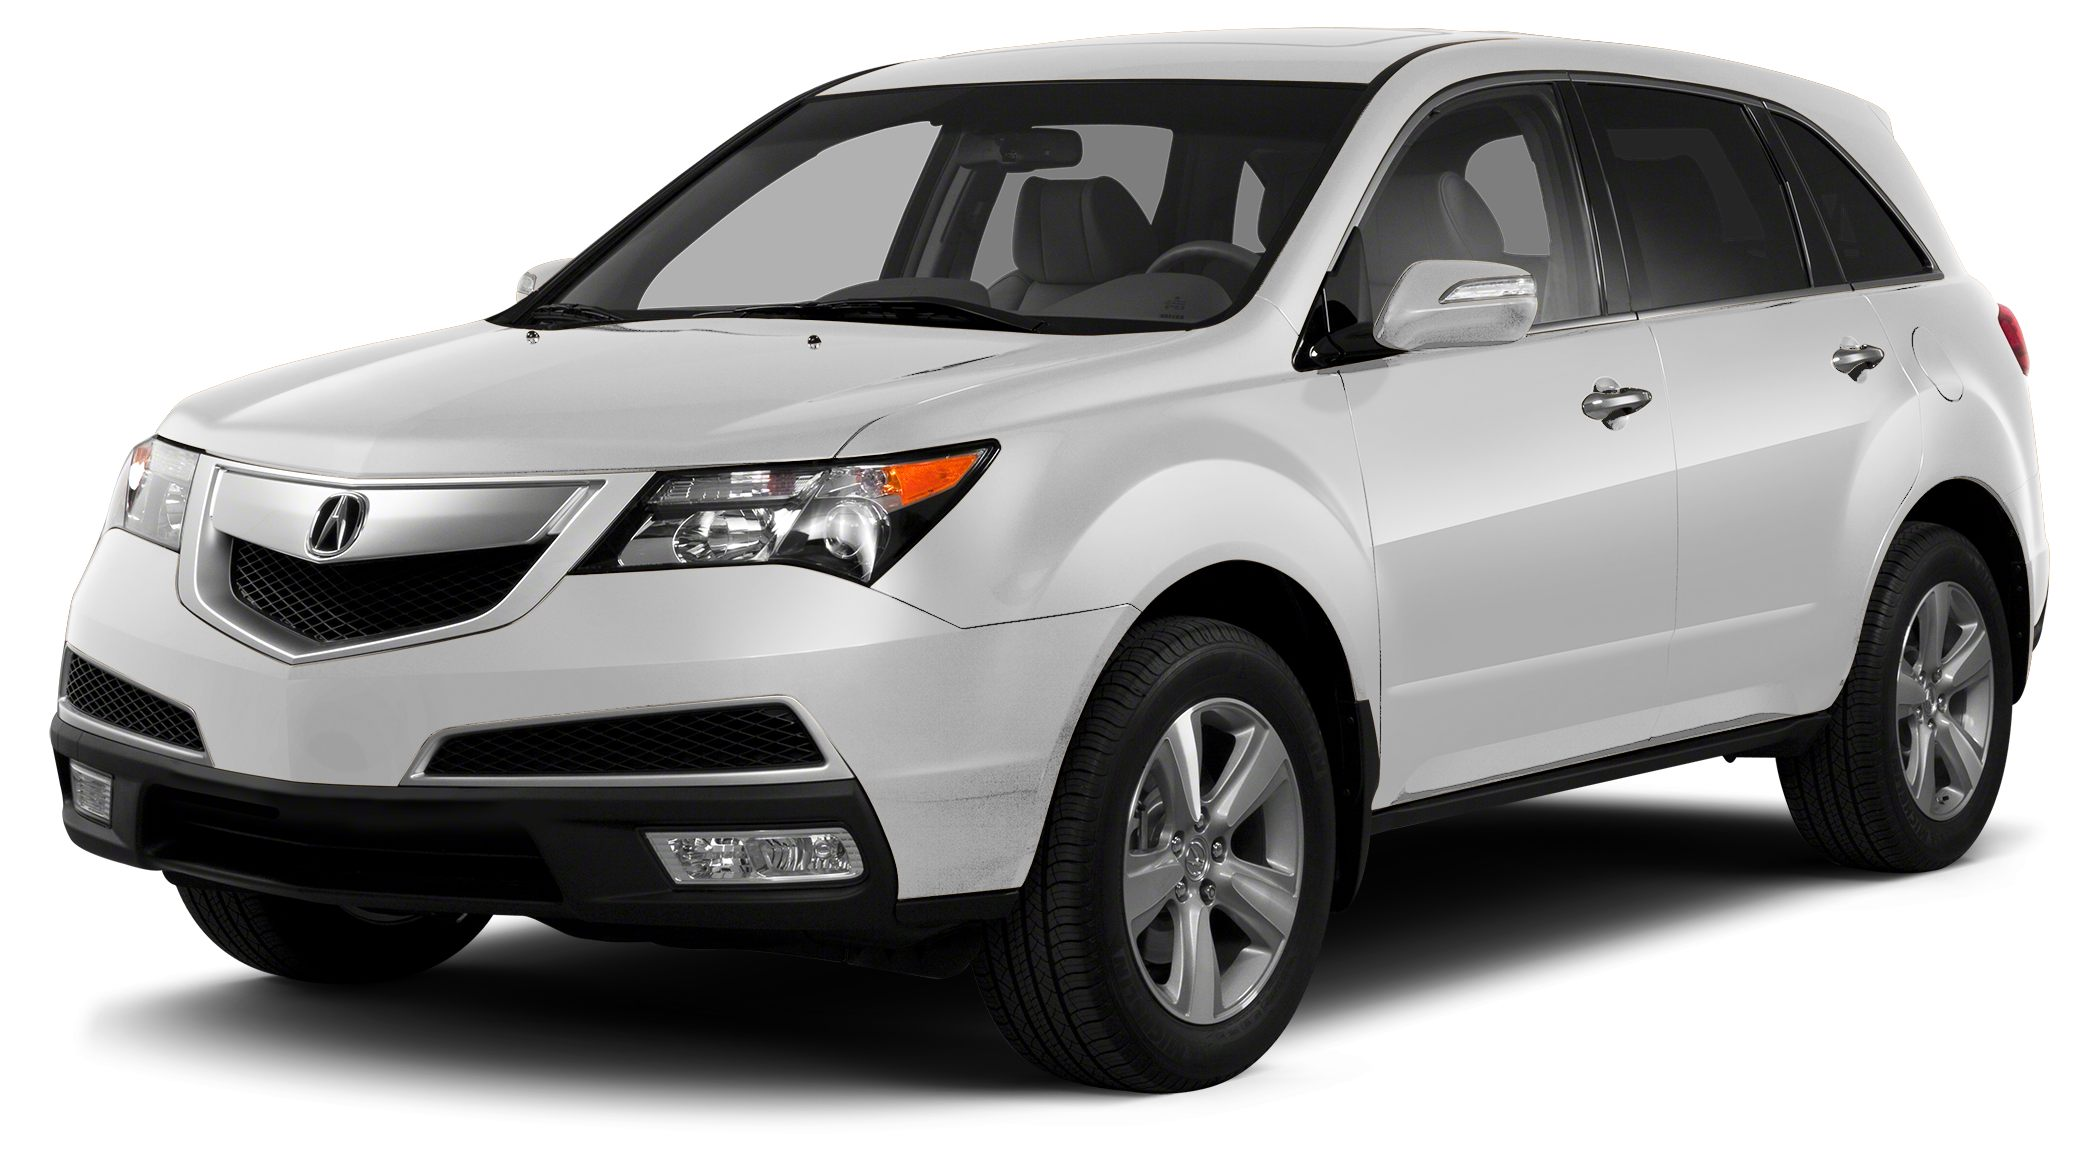 2013 Acura MDX 37 Technology Miles 37685Color Aspen White Pearl Stock 519340 VIN 2HNYD2H32D